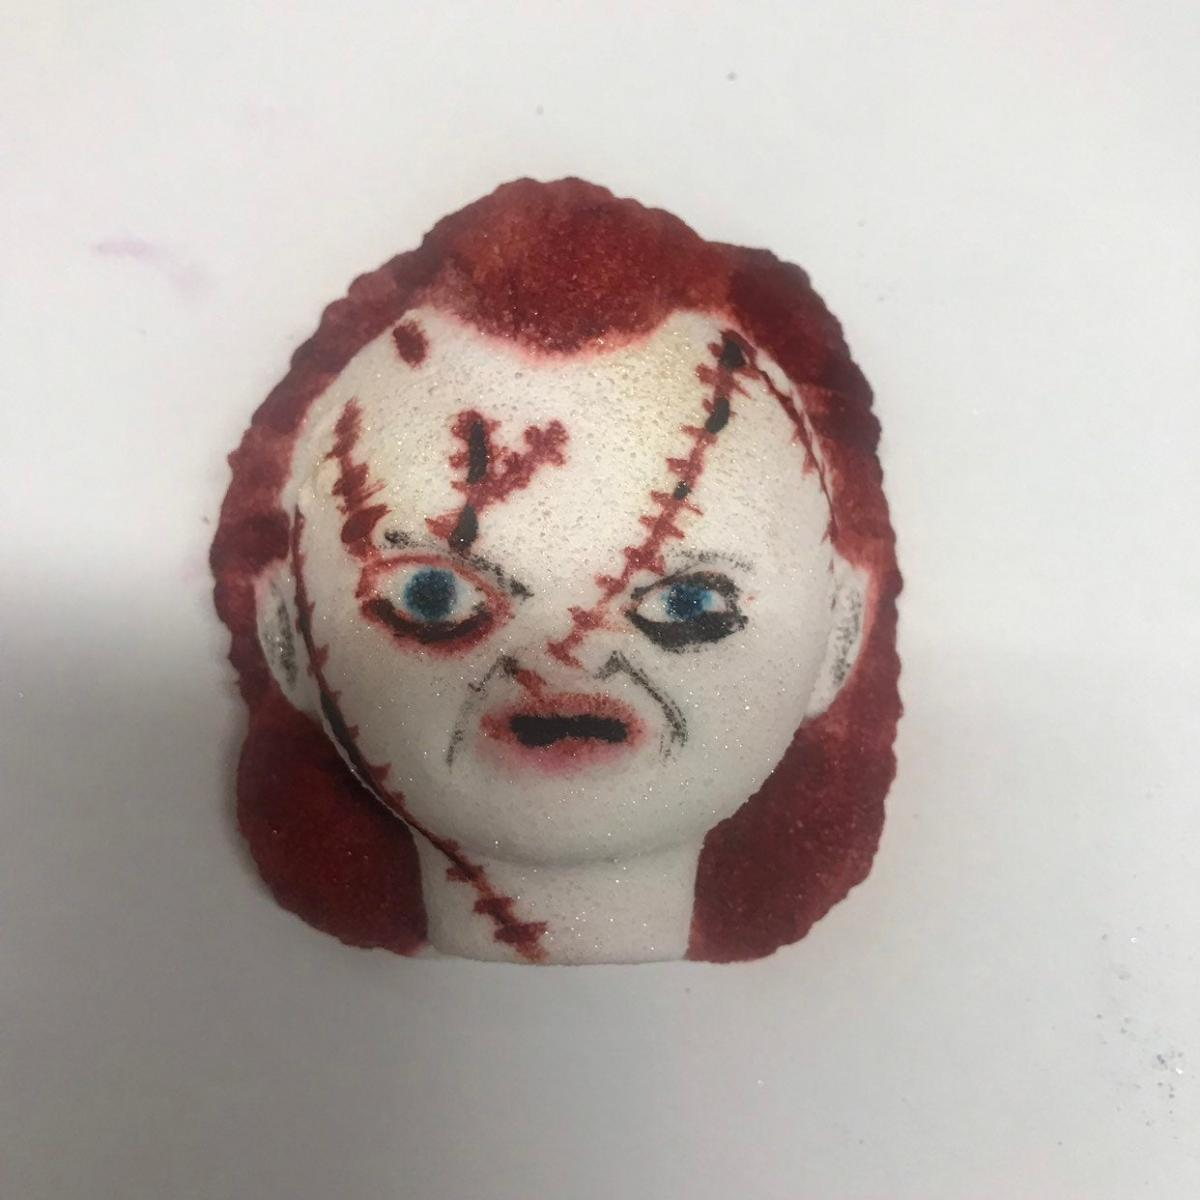 Scary Horror Chucky Child's Play Bath Bomb - Melting Chucky bloody bath bomb